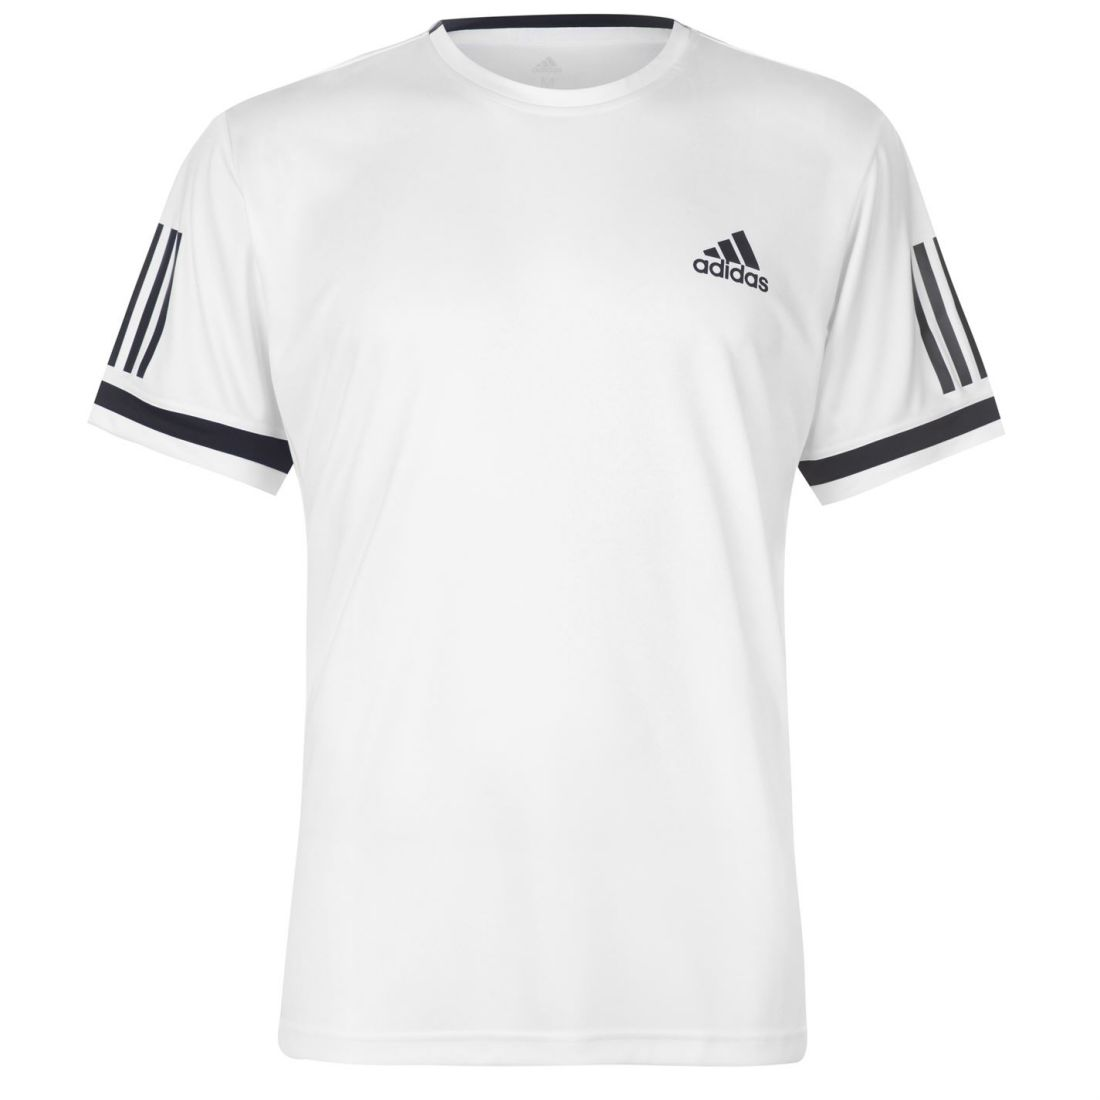 Details about adidas Mens Club 3 Stripes T Shirt Short Sleeve Performance Tee Top Crew Neck